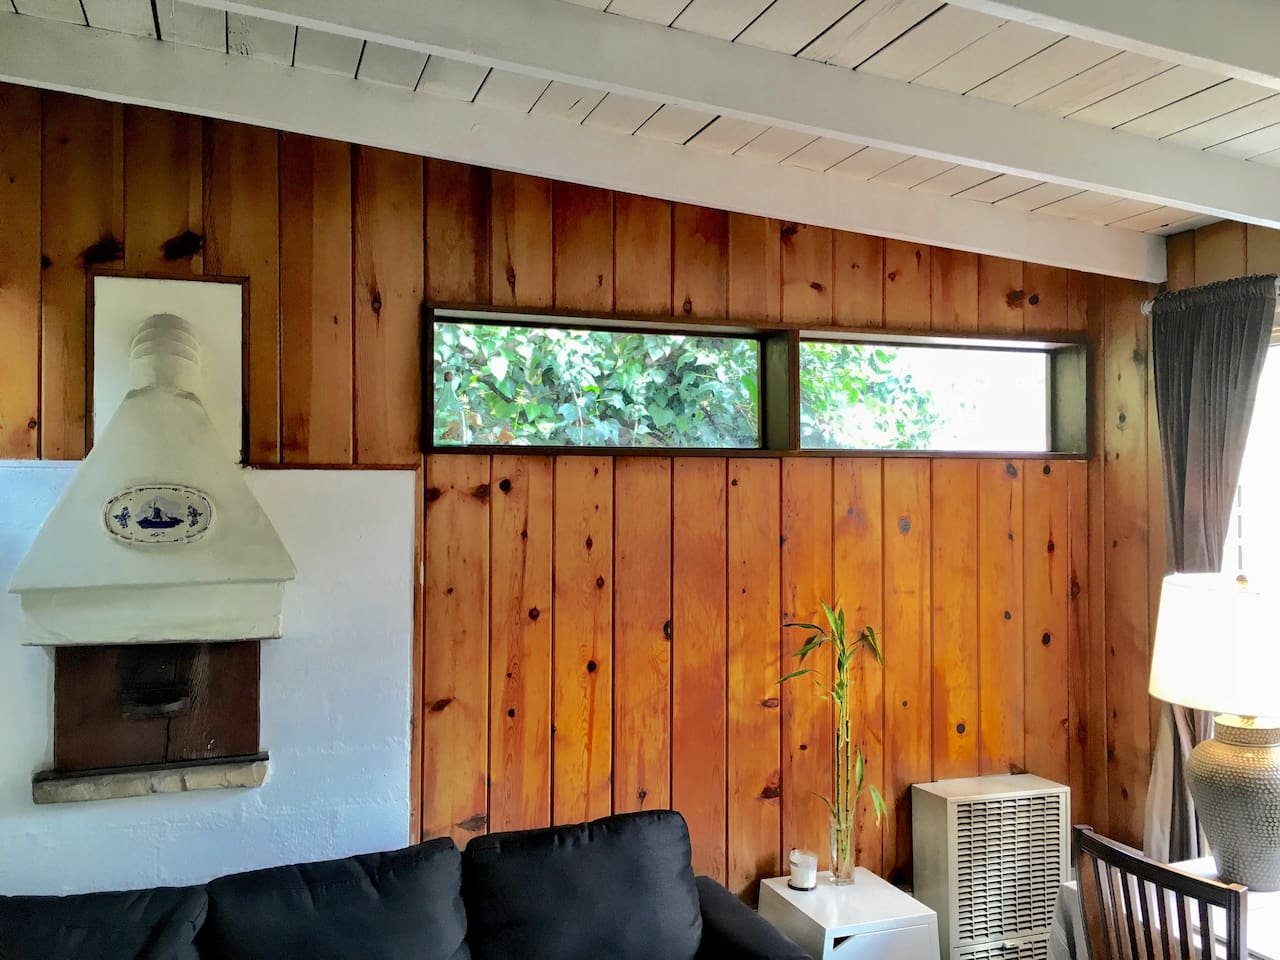 Your warm, Mid-Century cabin hide-away in the hills.